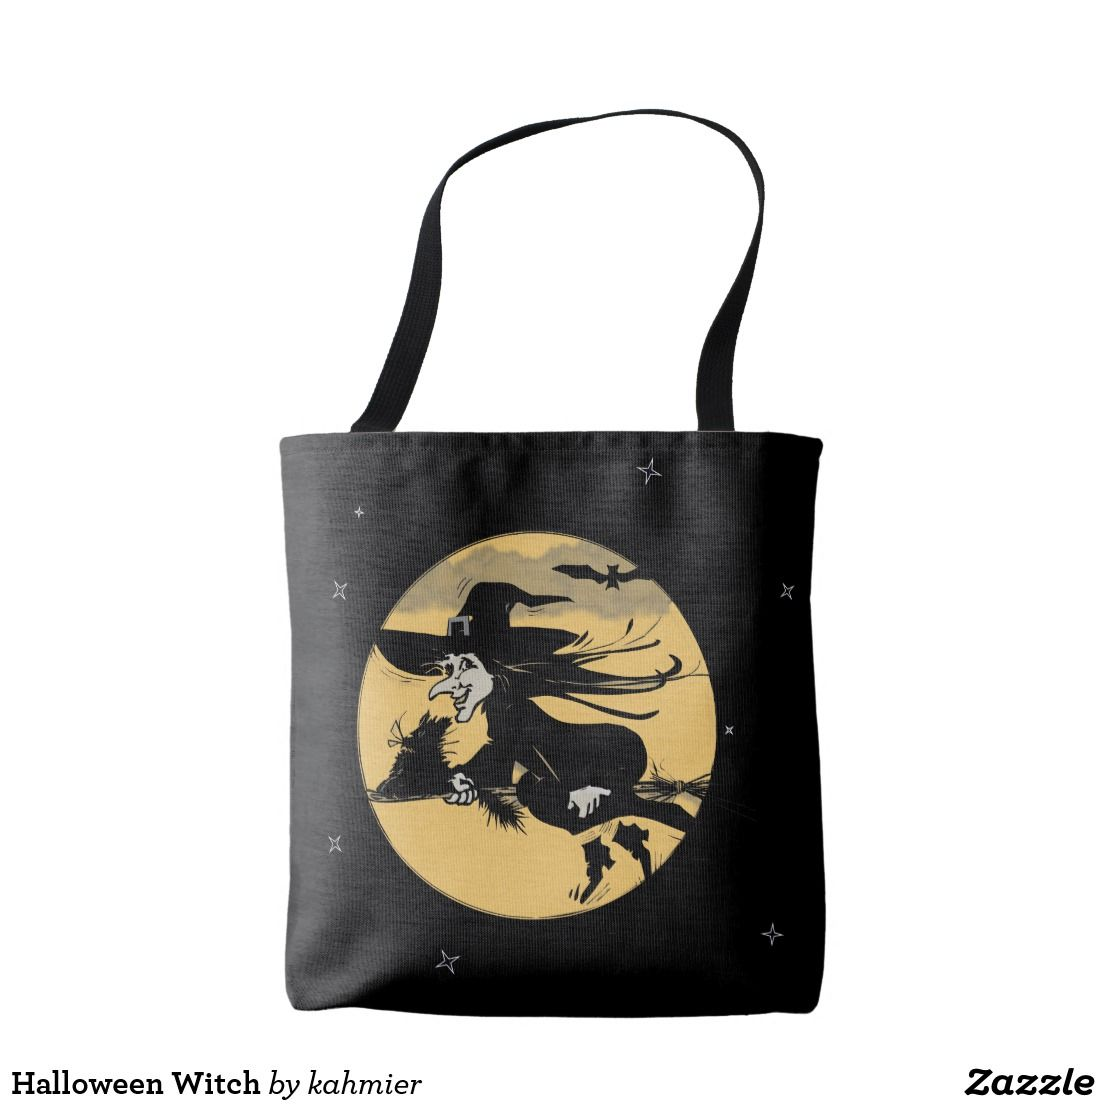 Halloween witch tote bag 50 off leatherwooddesign tote